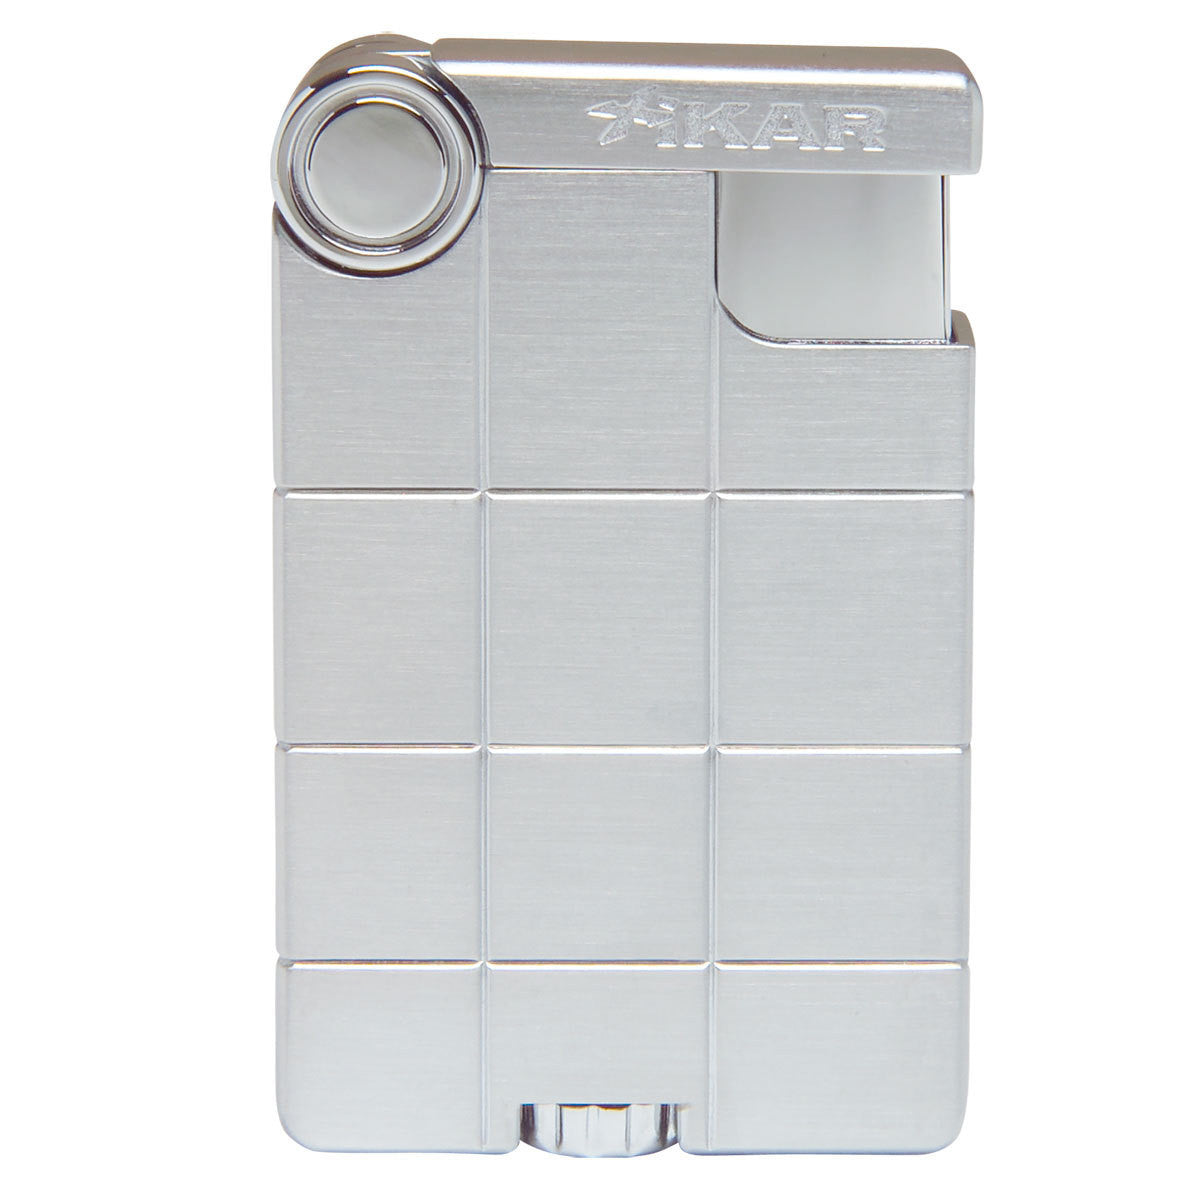 Xikar Ex Cigar Windproof Lighter - Humidors Wholesaler